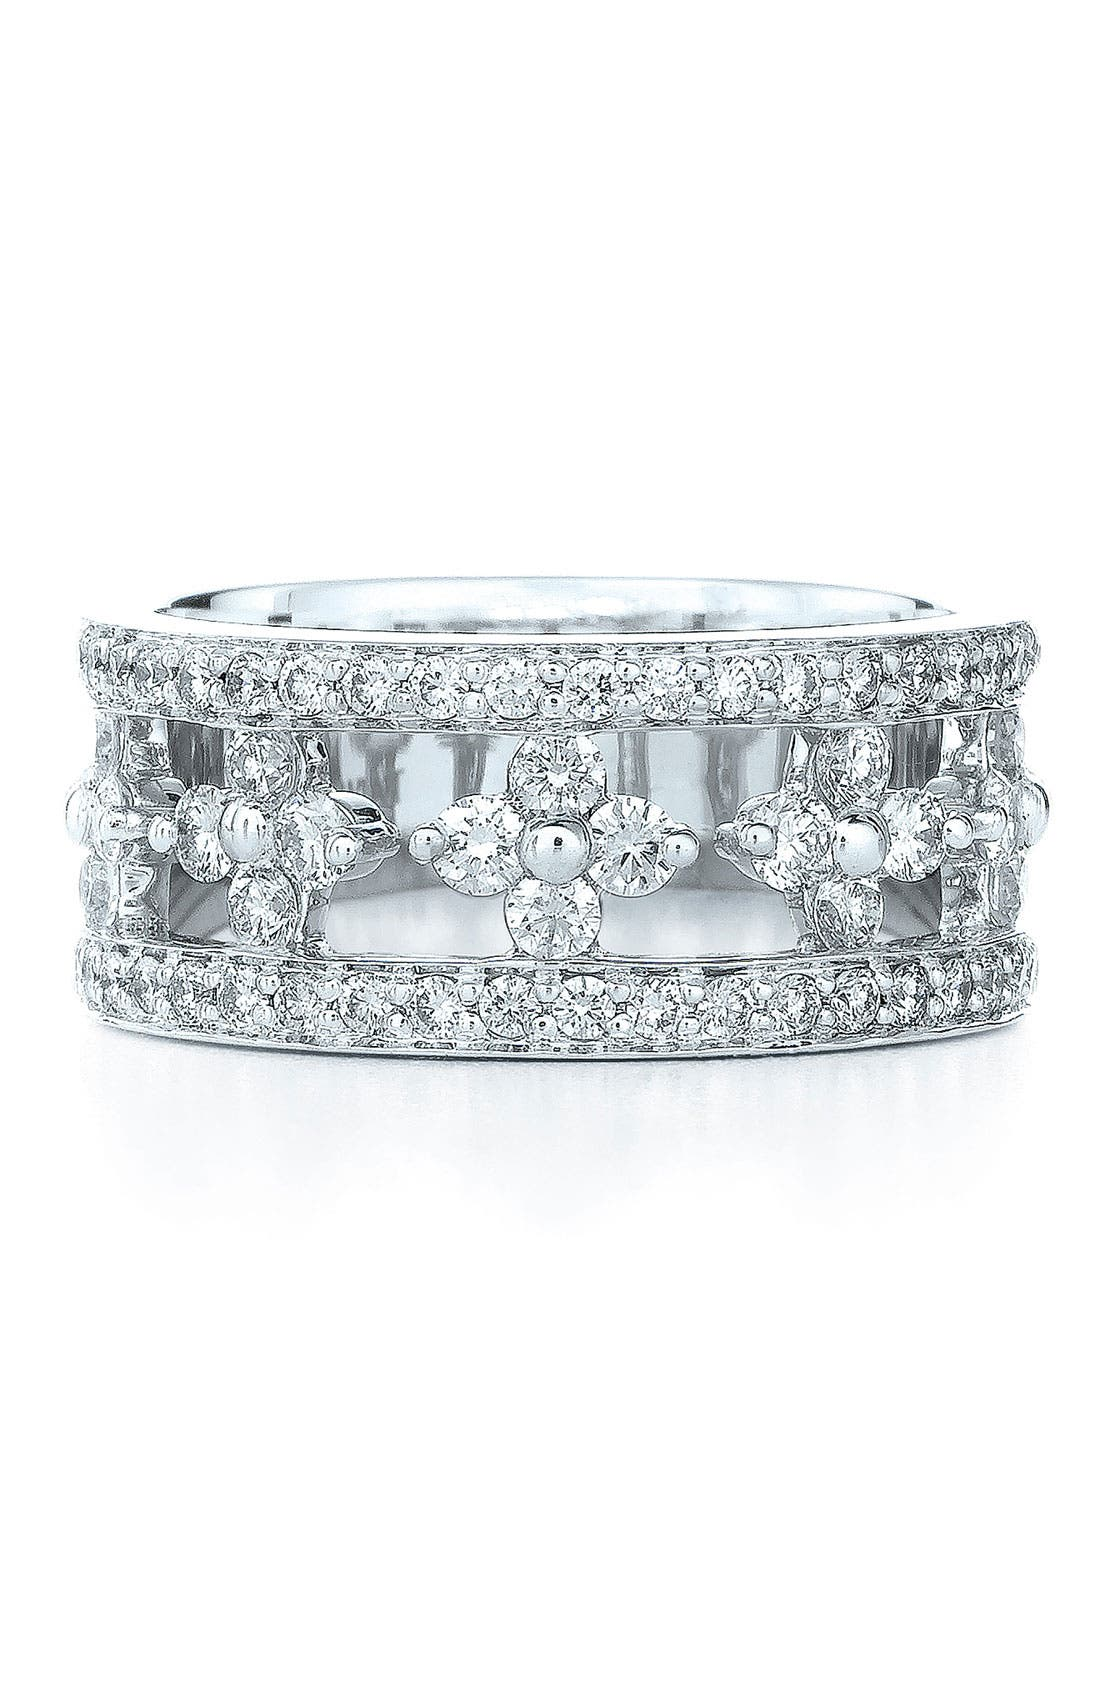 Main Image - Kwiat 'Jasmine' Floral White Gold & Diamond Ring